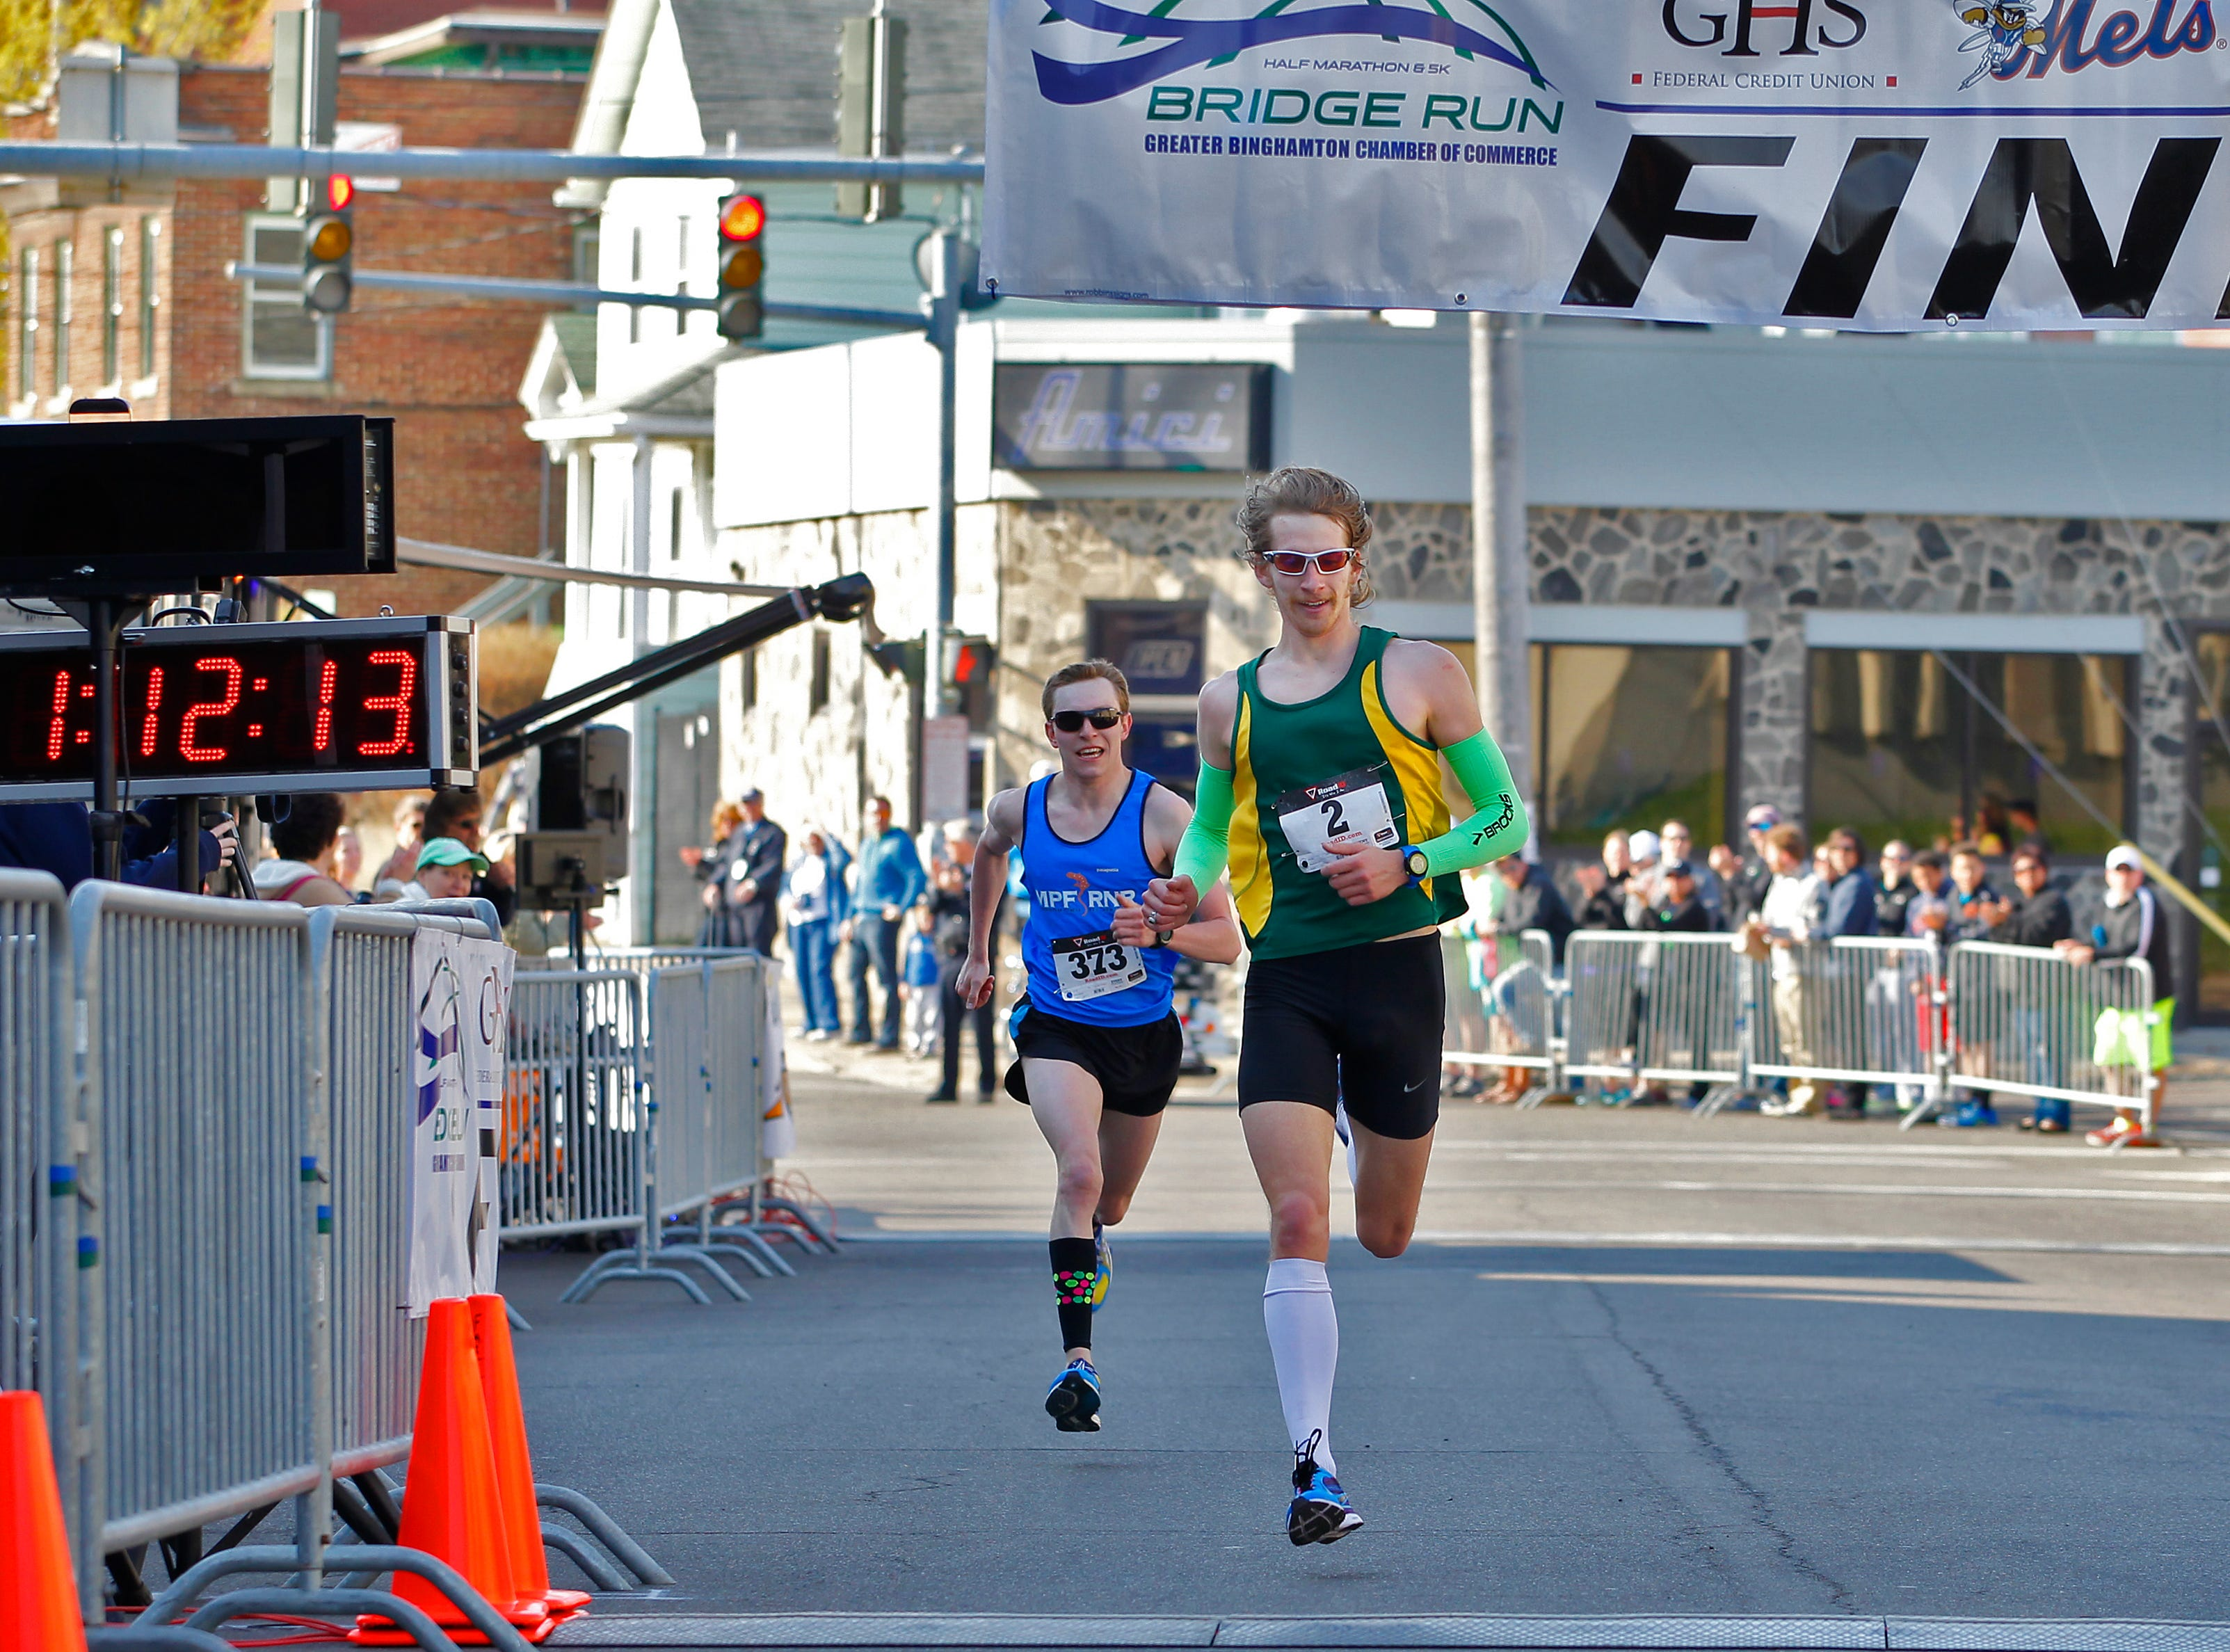 2015: Benjamin Snodgrass, 23, of Apalachin takes first place while Cole Crosby, 26, of Cortland takes second in the half marathon during the Bridge Run on Sunday, May 3.